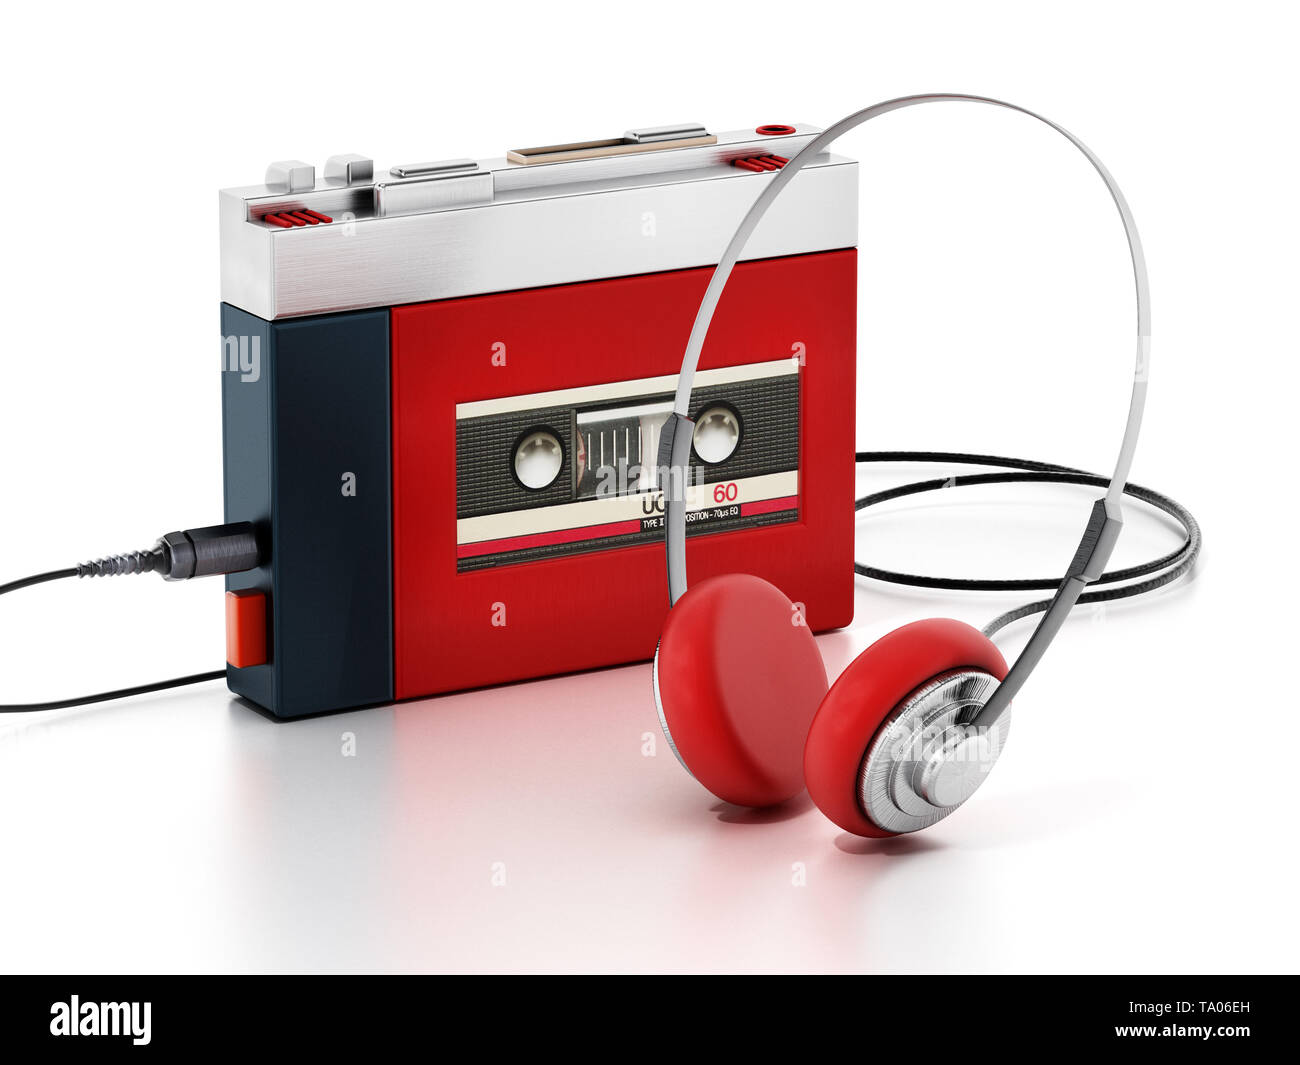 Retro portable cassette player isolated on white background. 3D illustration. - Stock Image